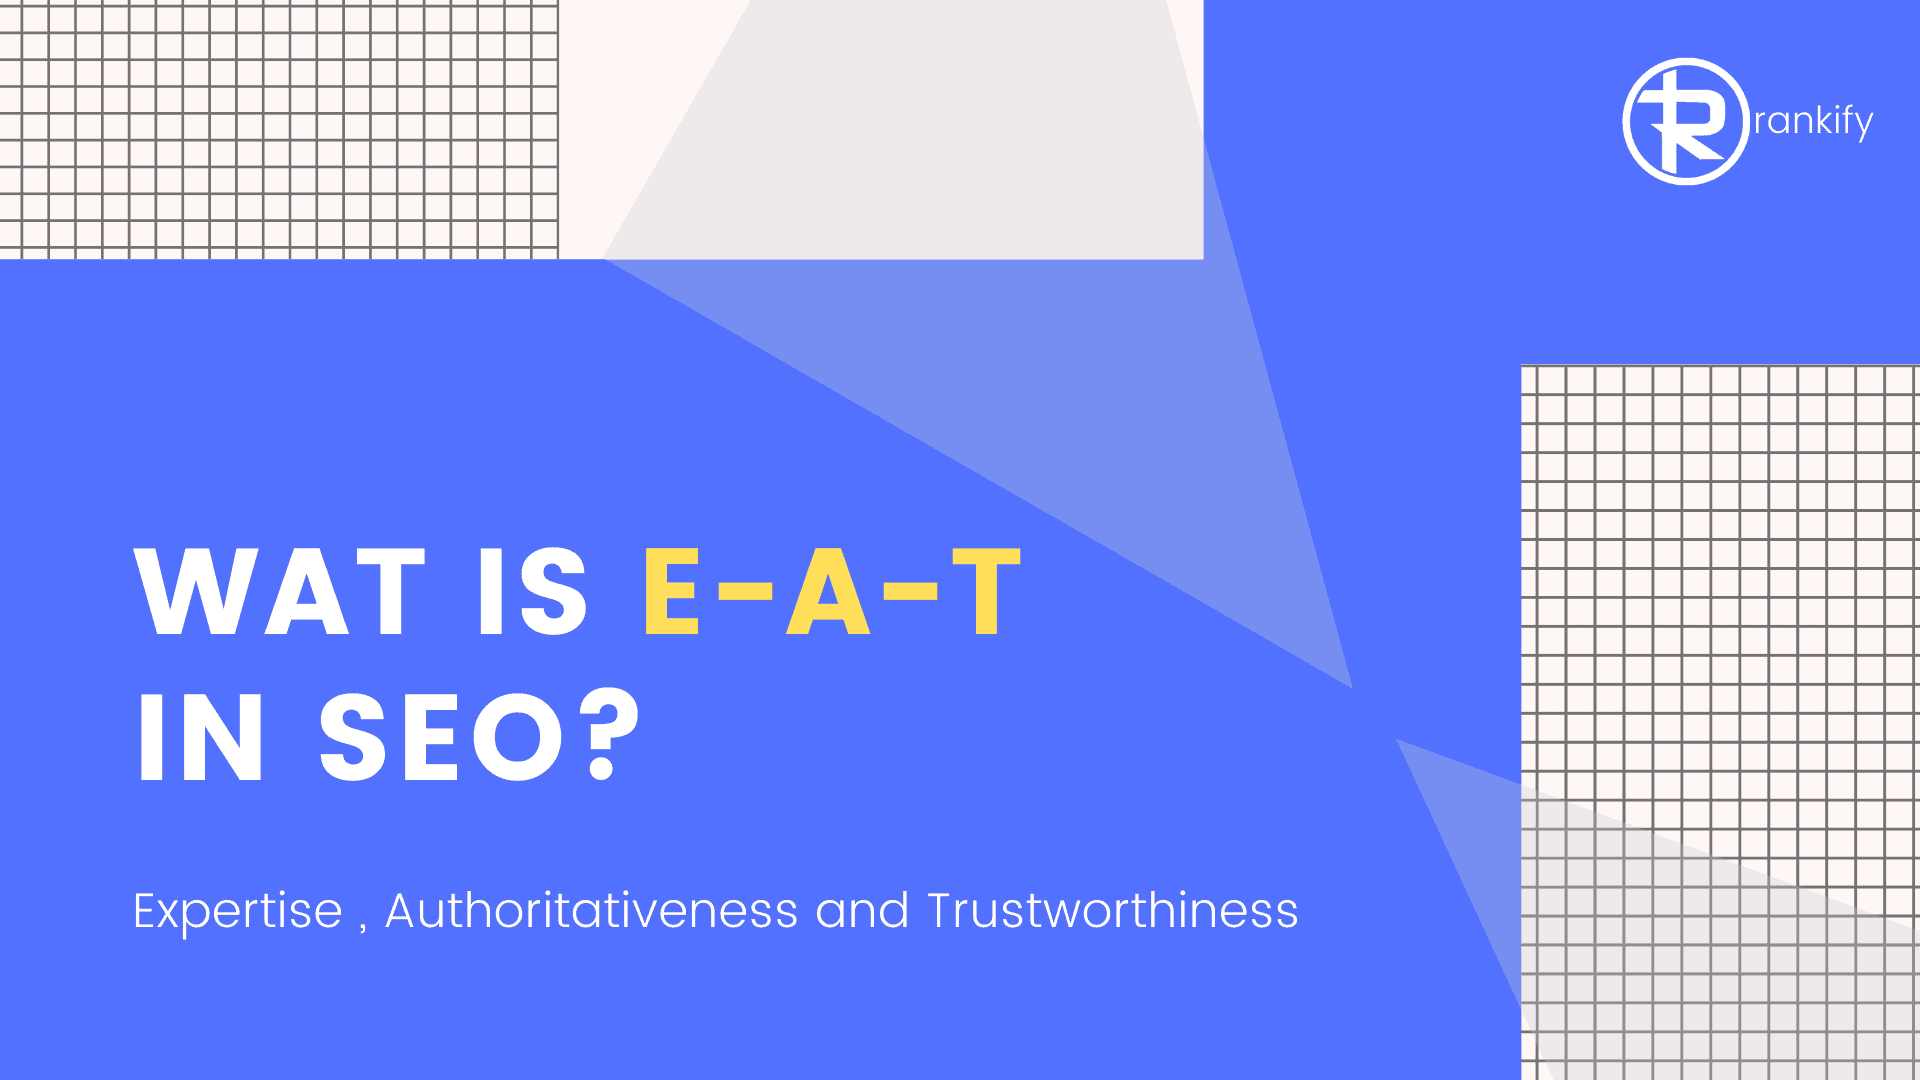 wat is EAT in SEO?